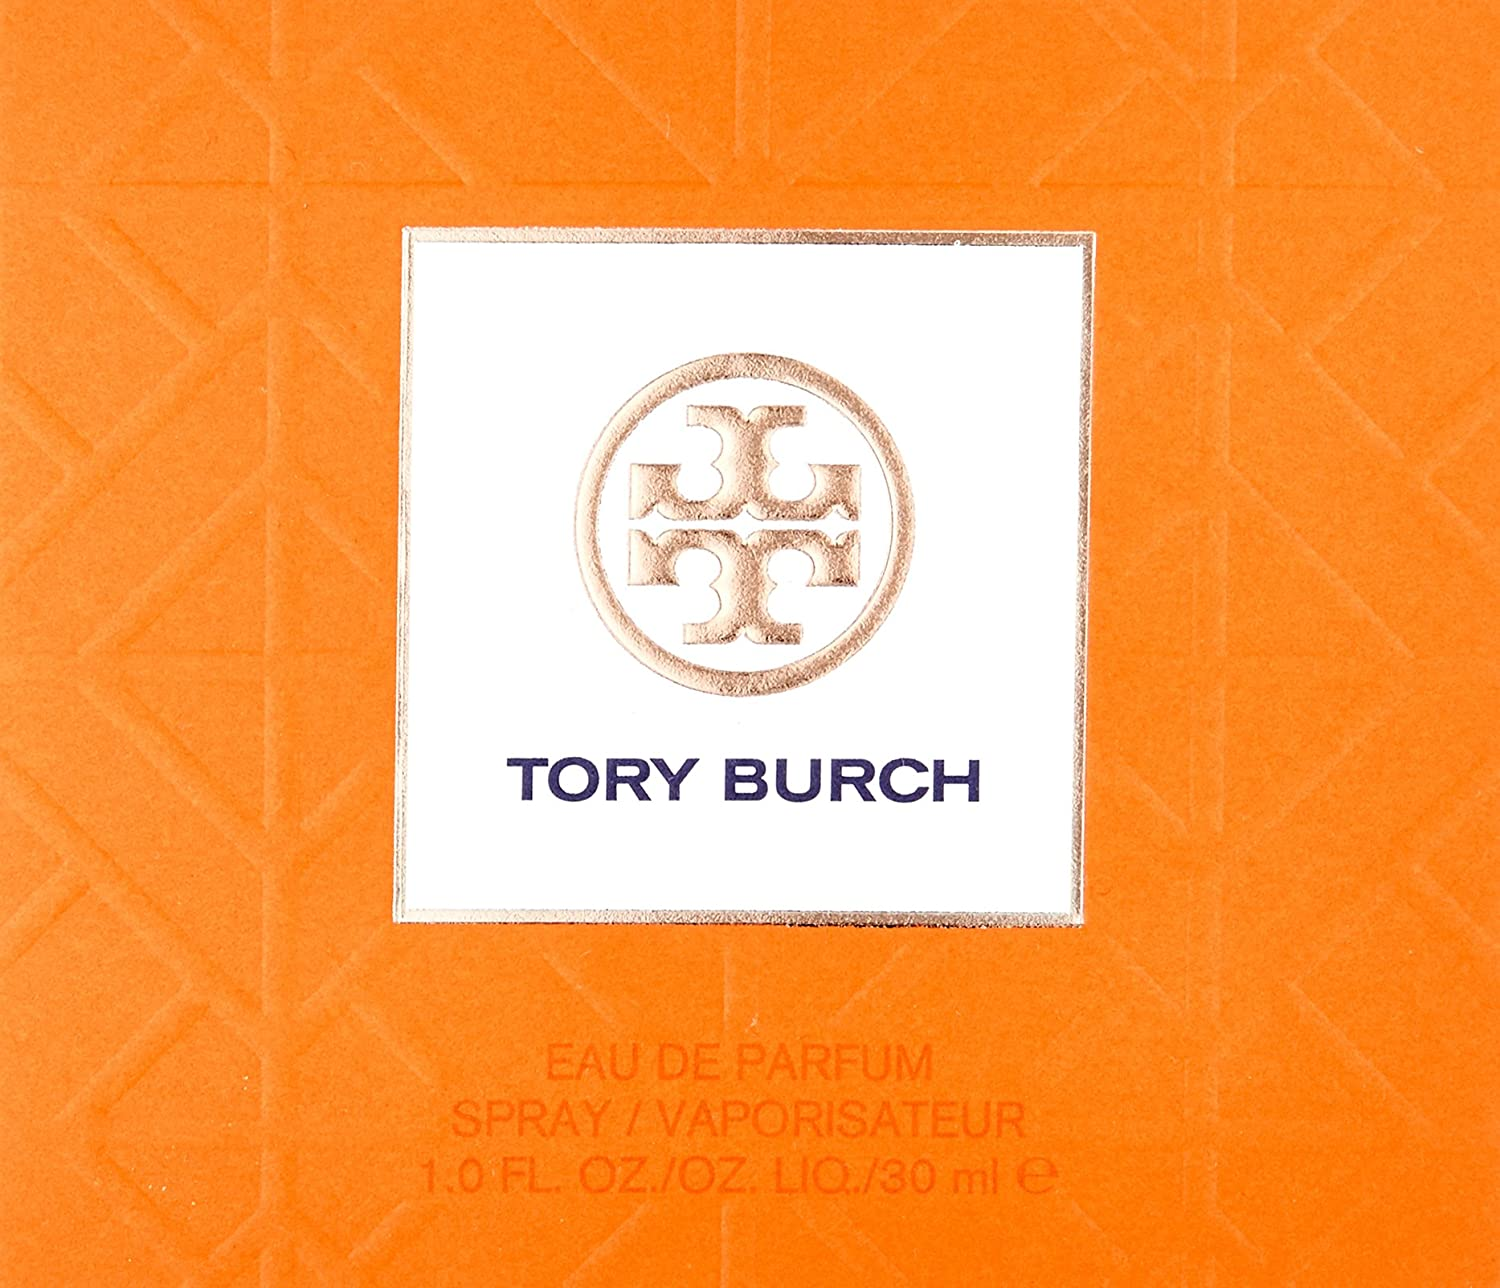 Amazon TORY BURCH Eau de Parfum Spray 1 7 Fluid Ounce Tory